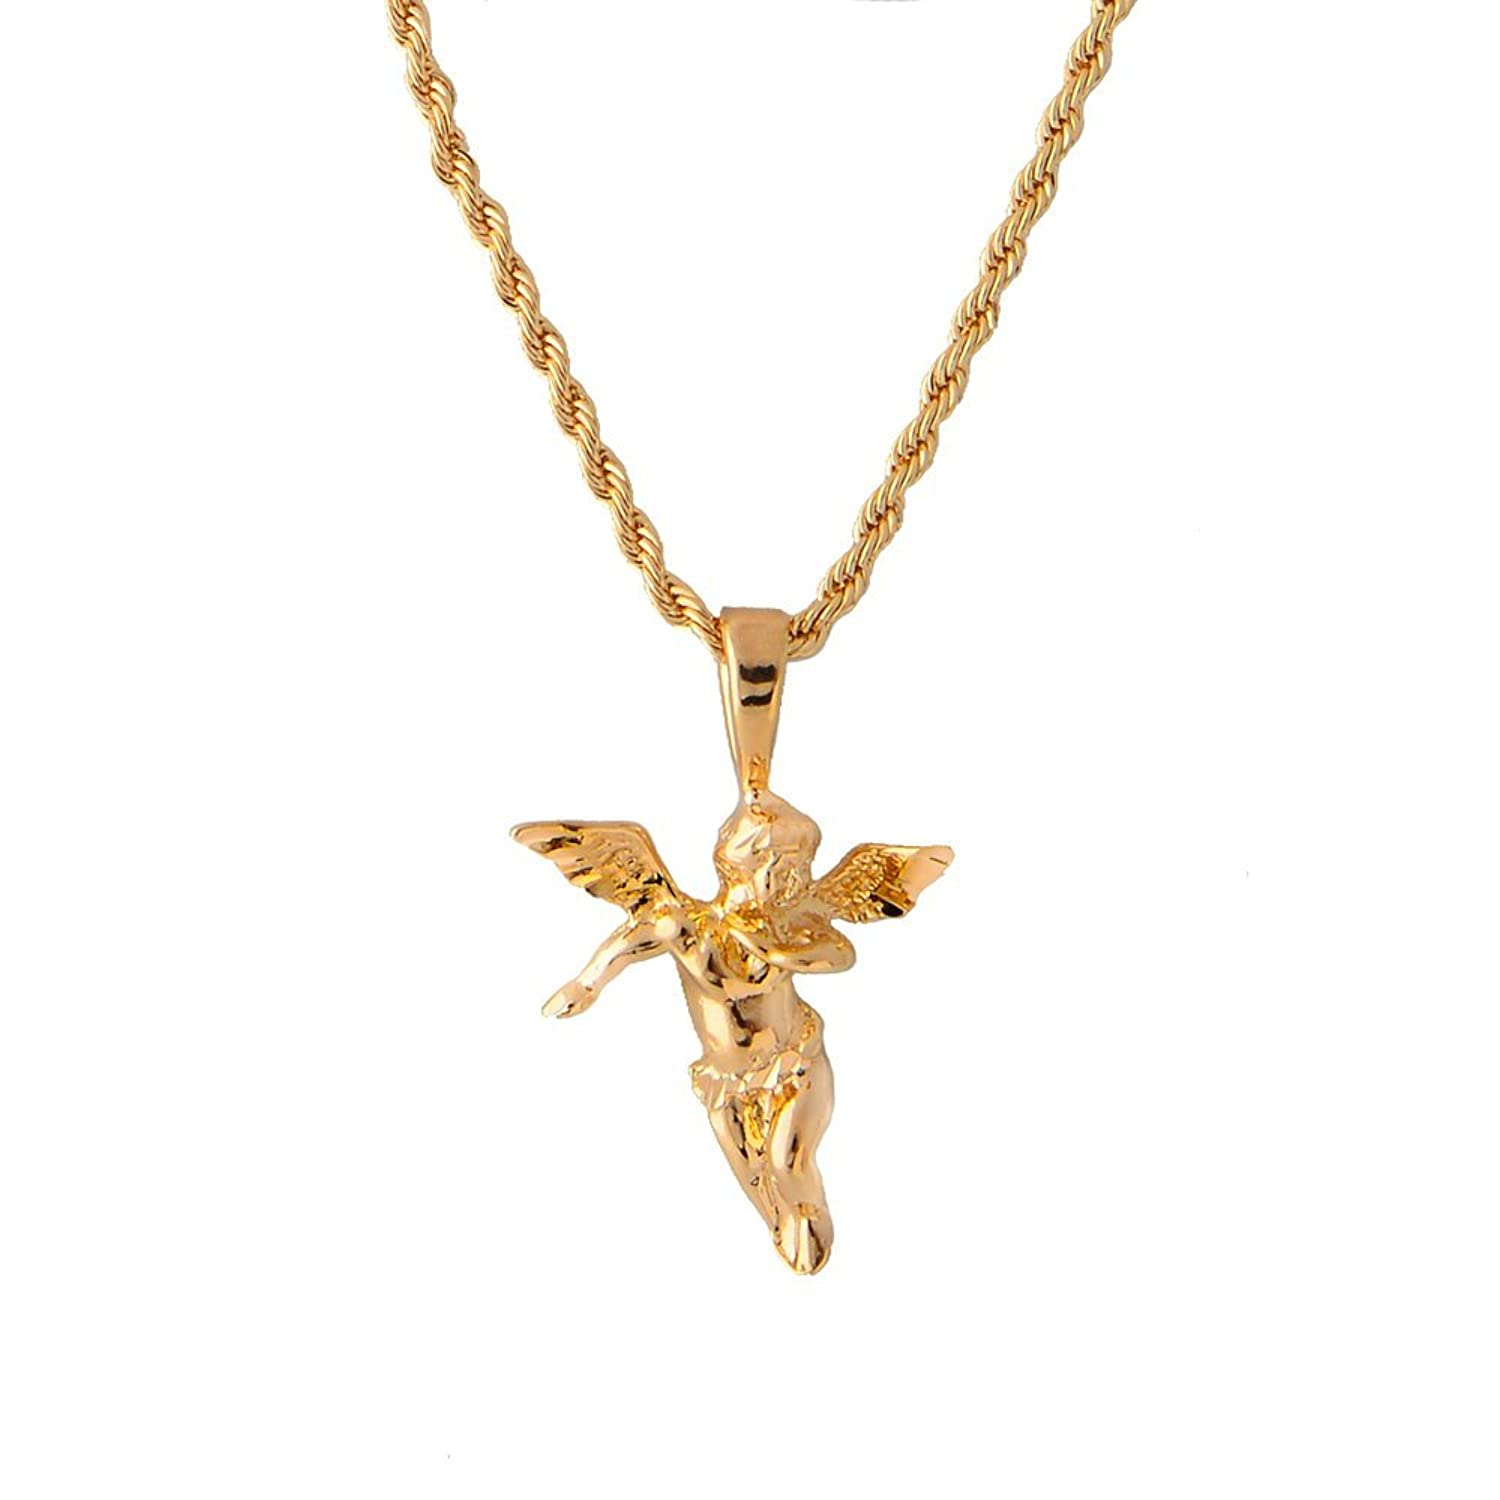 cuban plated jewelry gold s titanium from hip angel out crown pendant quality item chain iced bling high in necklaces men dope hop necklace steel